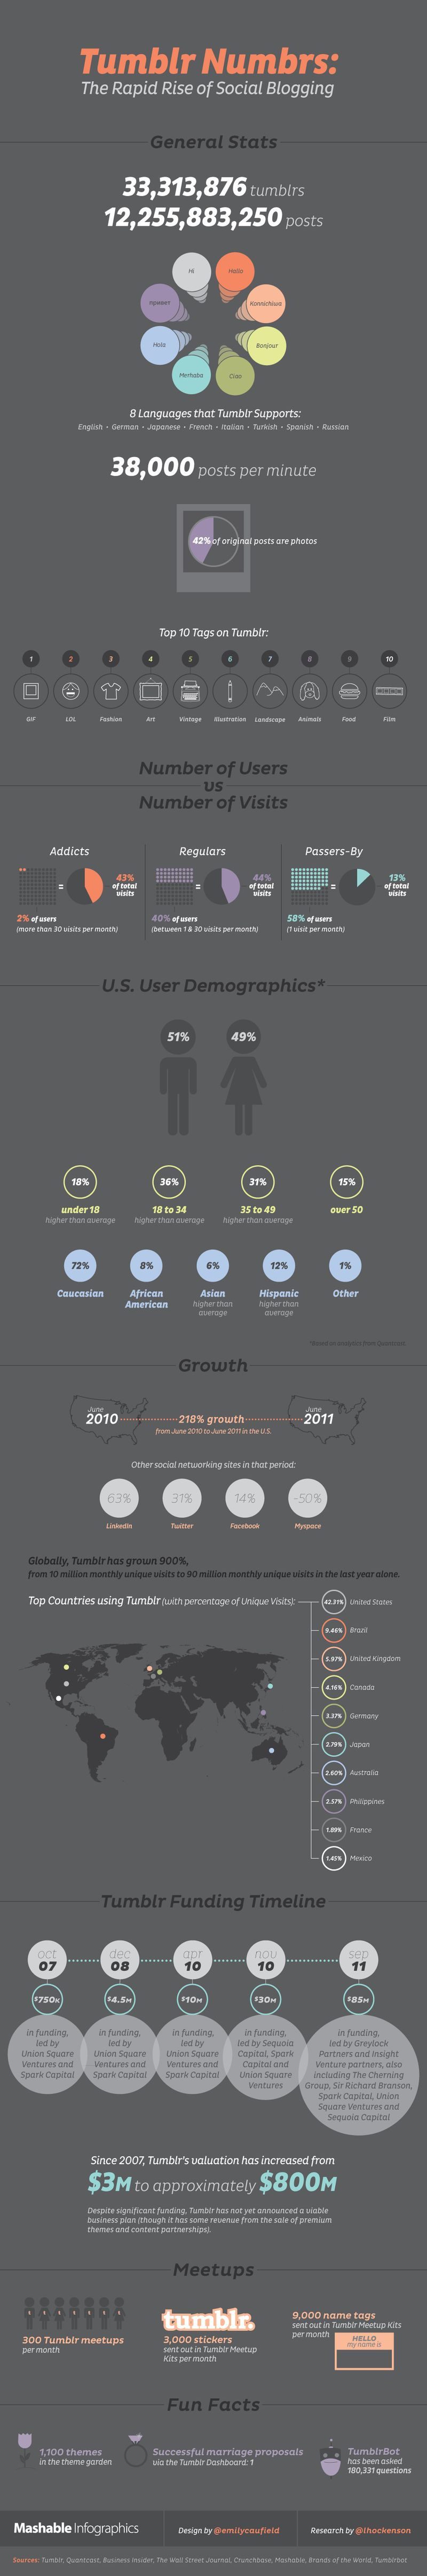 Tumblr growth infographic Mashable